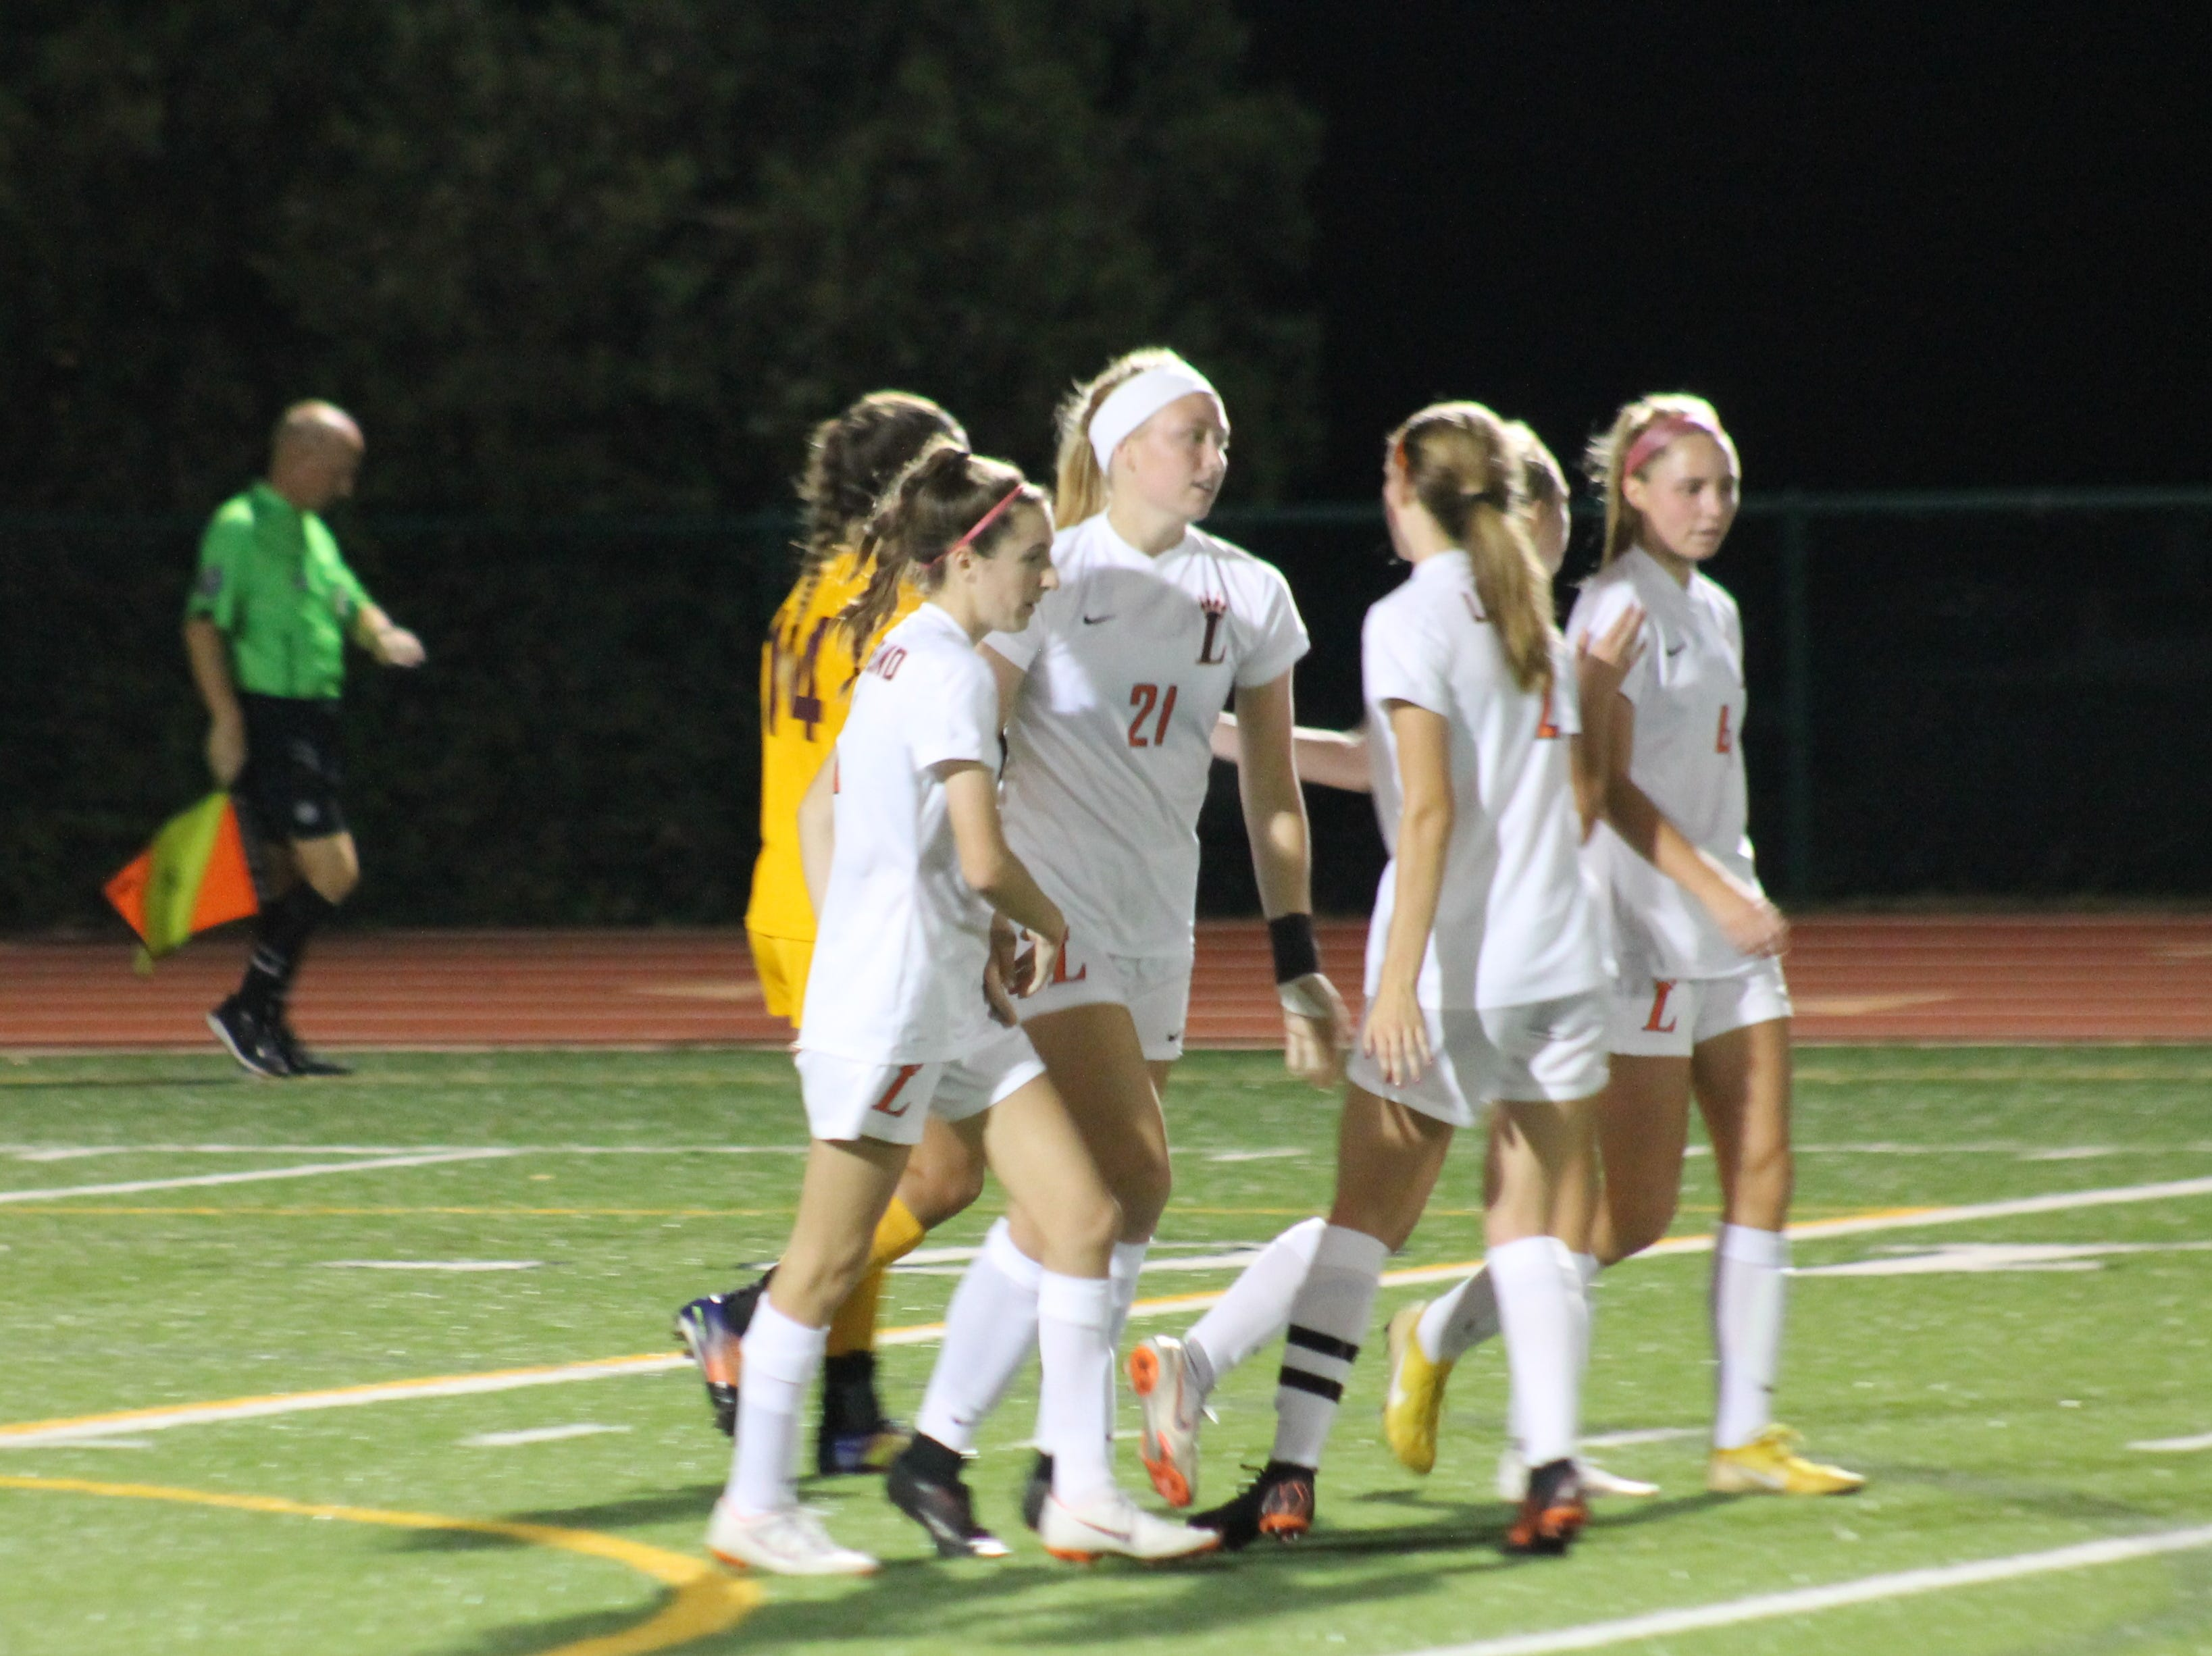 Loveland's Lauren Williams is congratulated after scoring the third and final goal for the Lady Tigers against Turpin